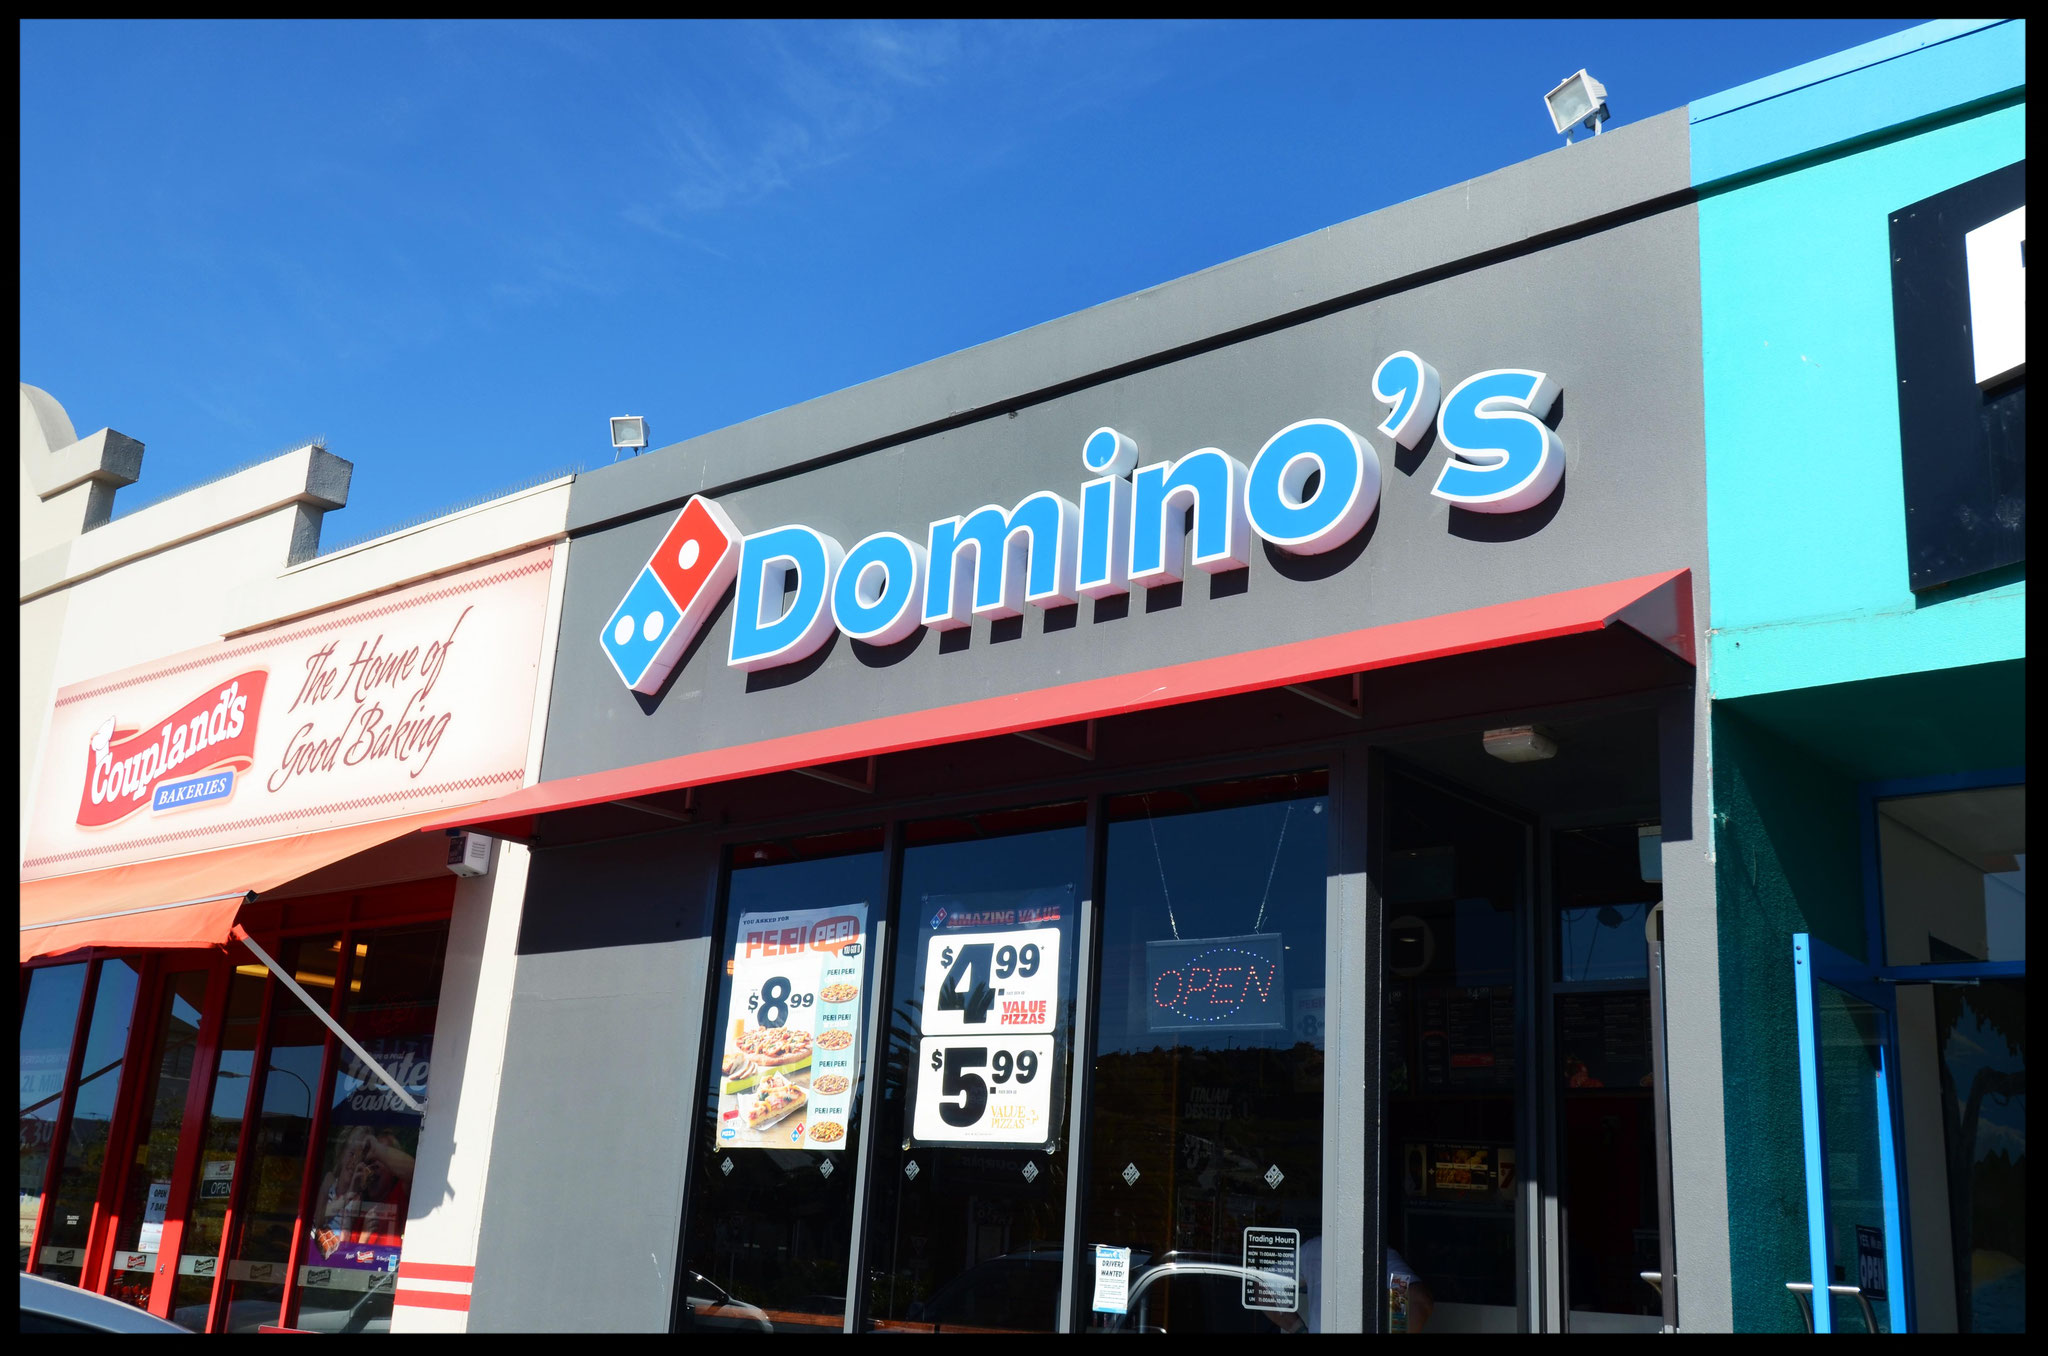 Domino's Pizza Awning, Nelson CBD